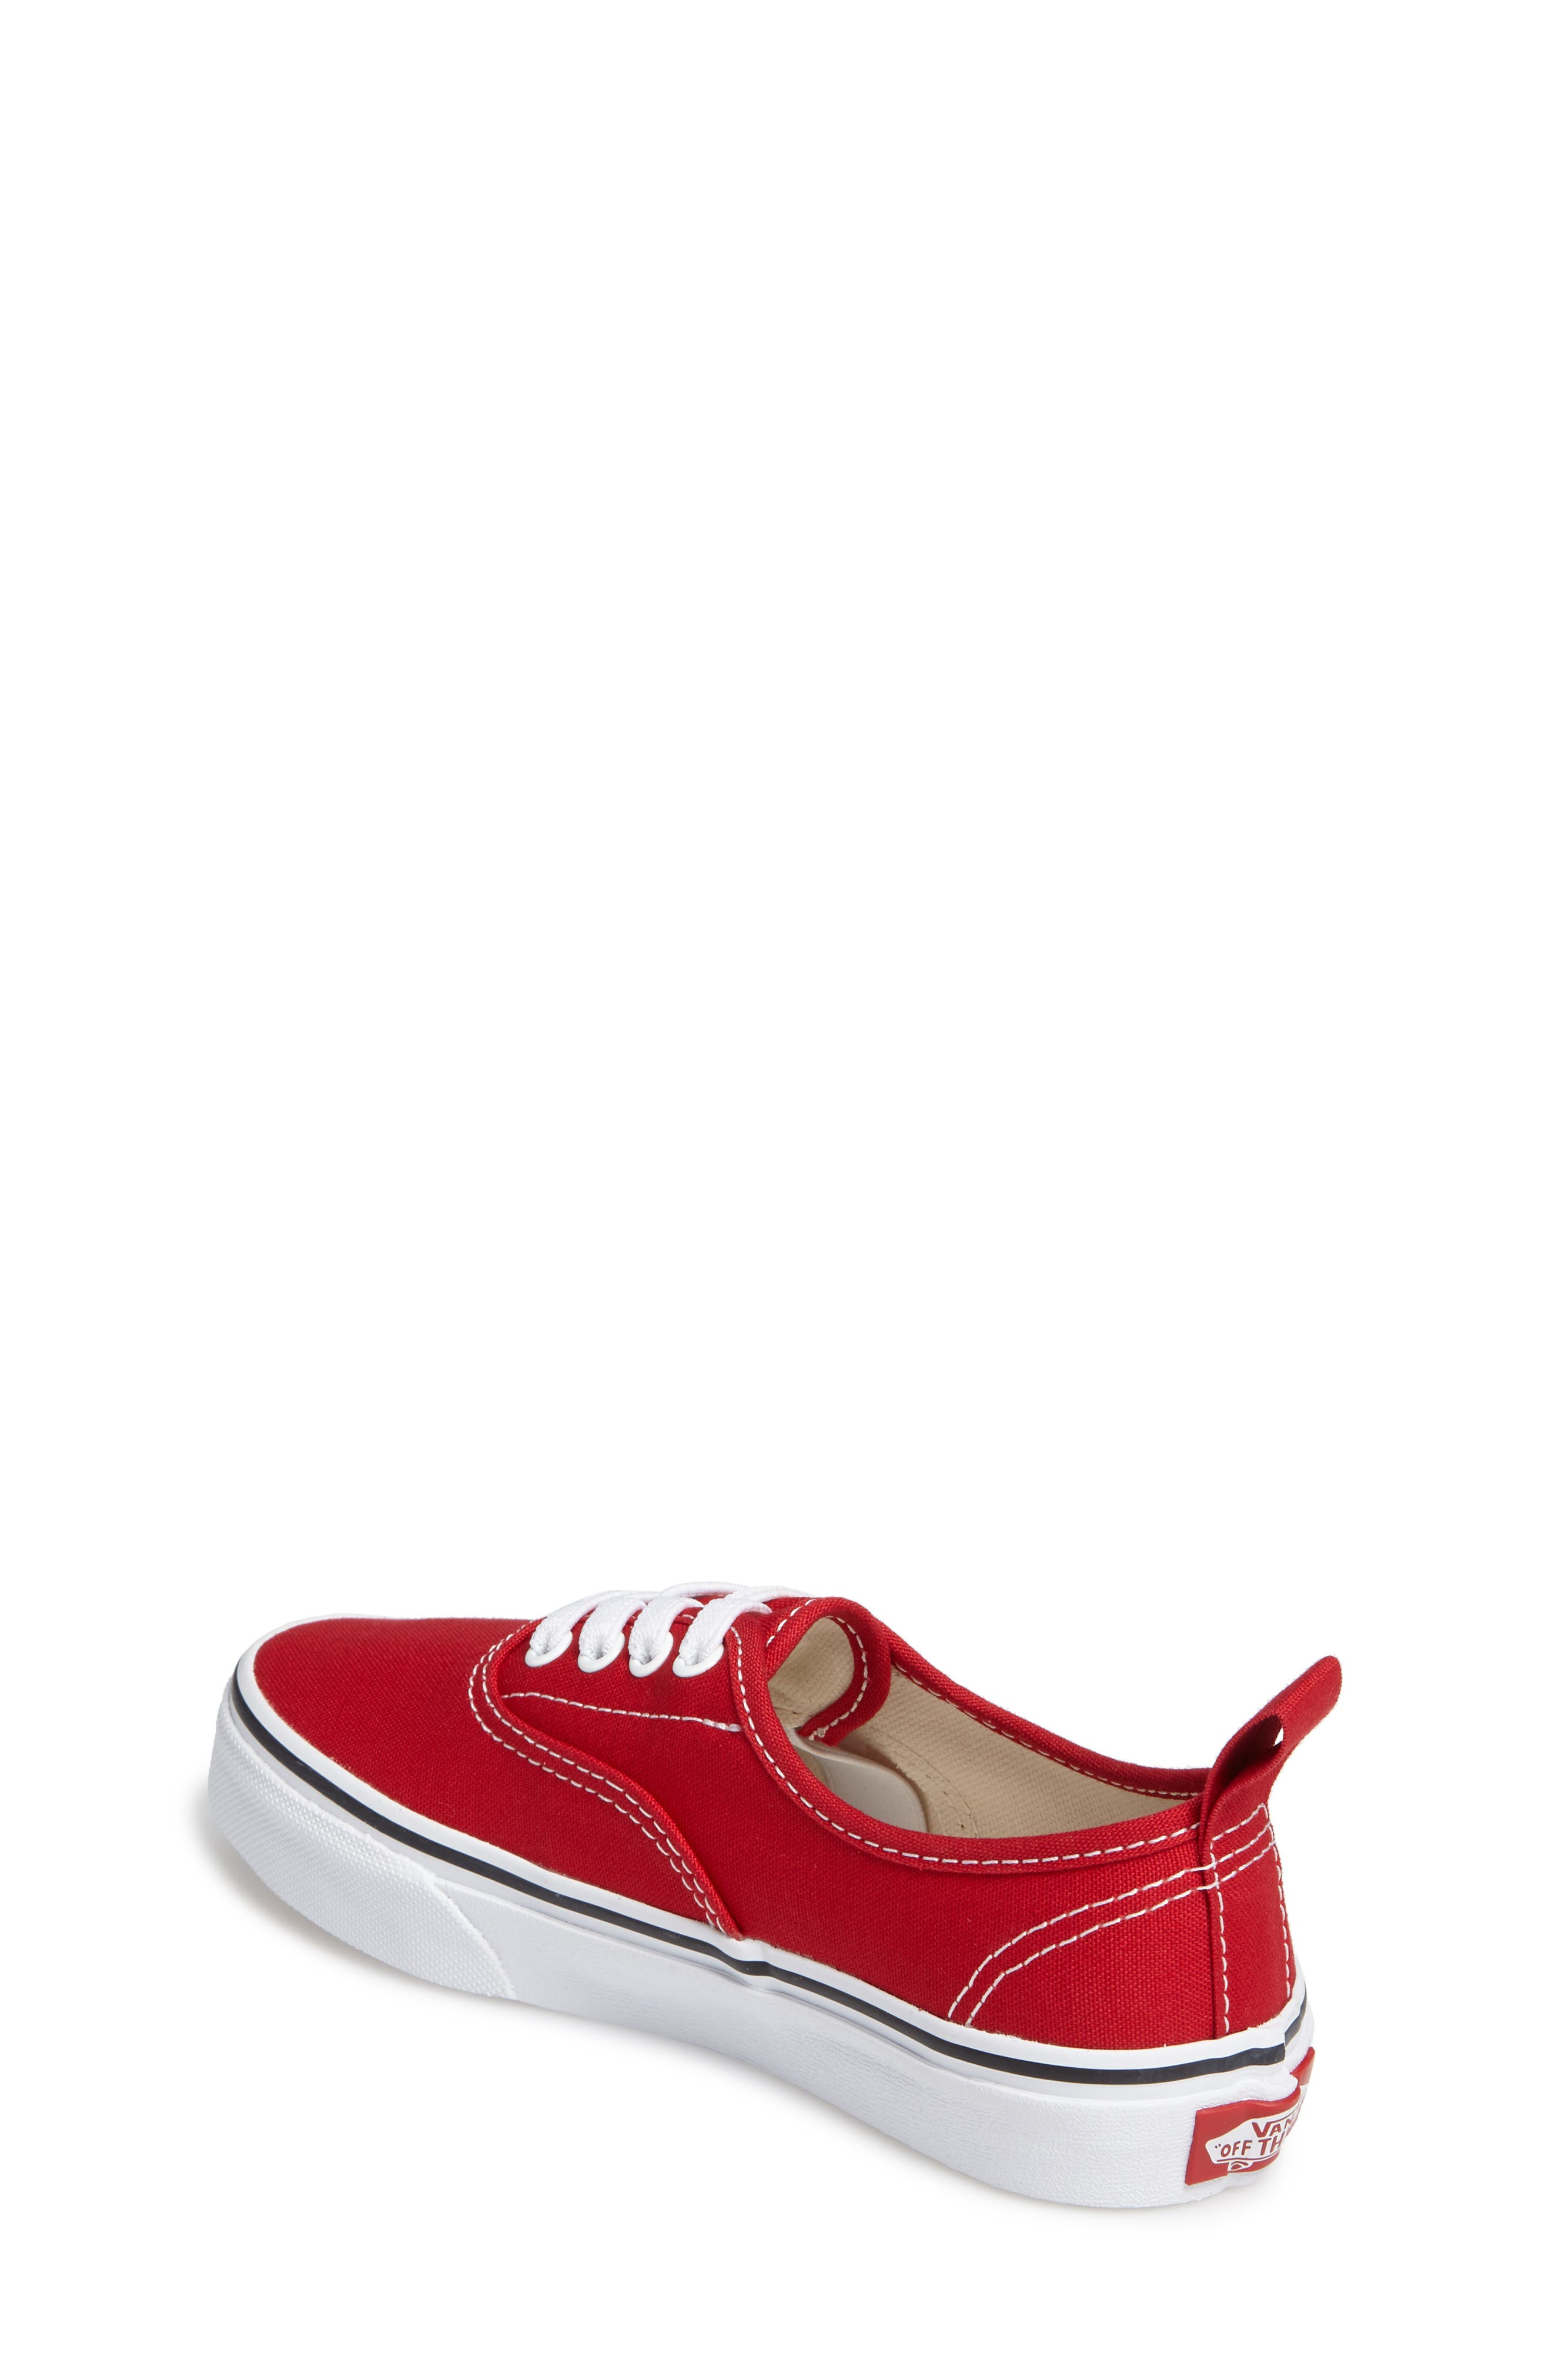 VANS, Authentic Sneaker, Alternate thumbnail 2, color, RACING RED/ TRUE WHITE